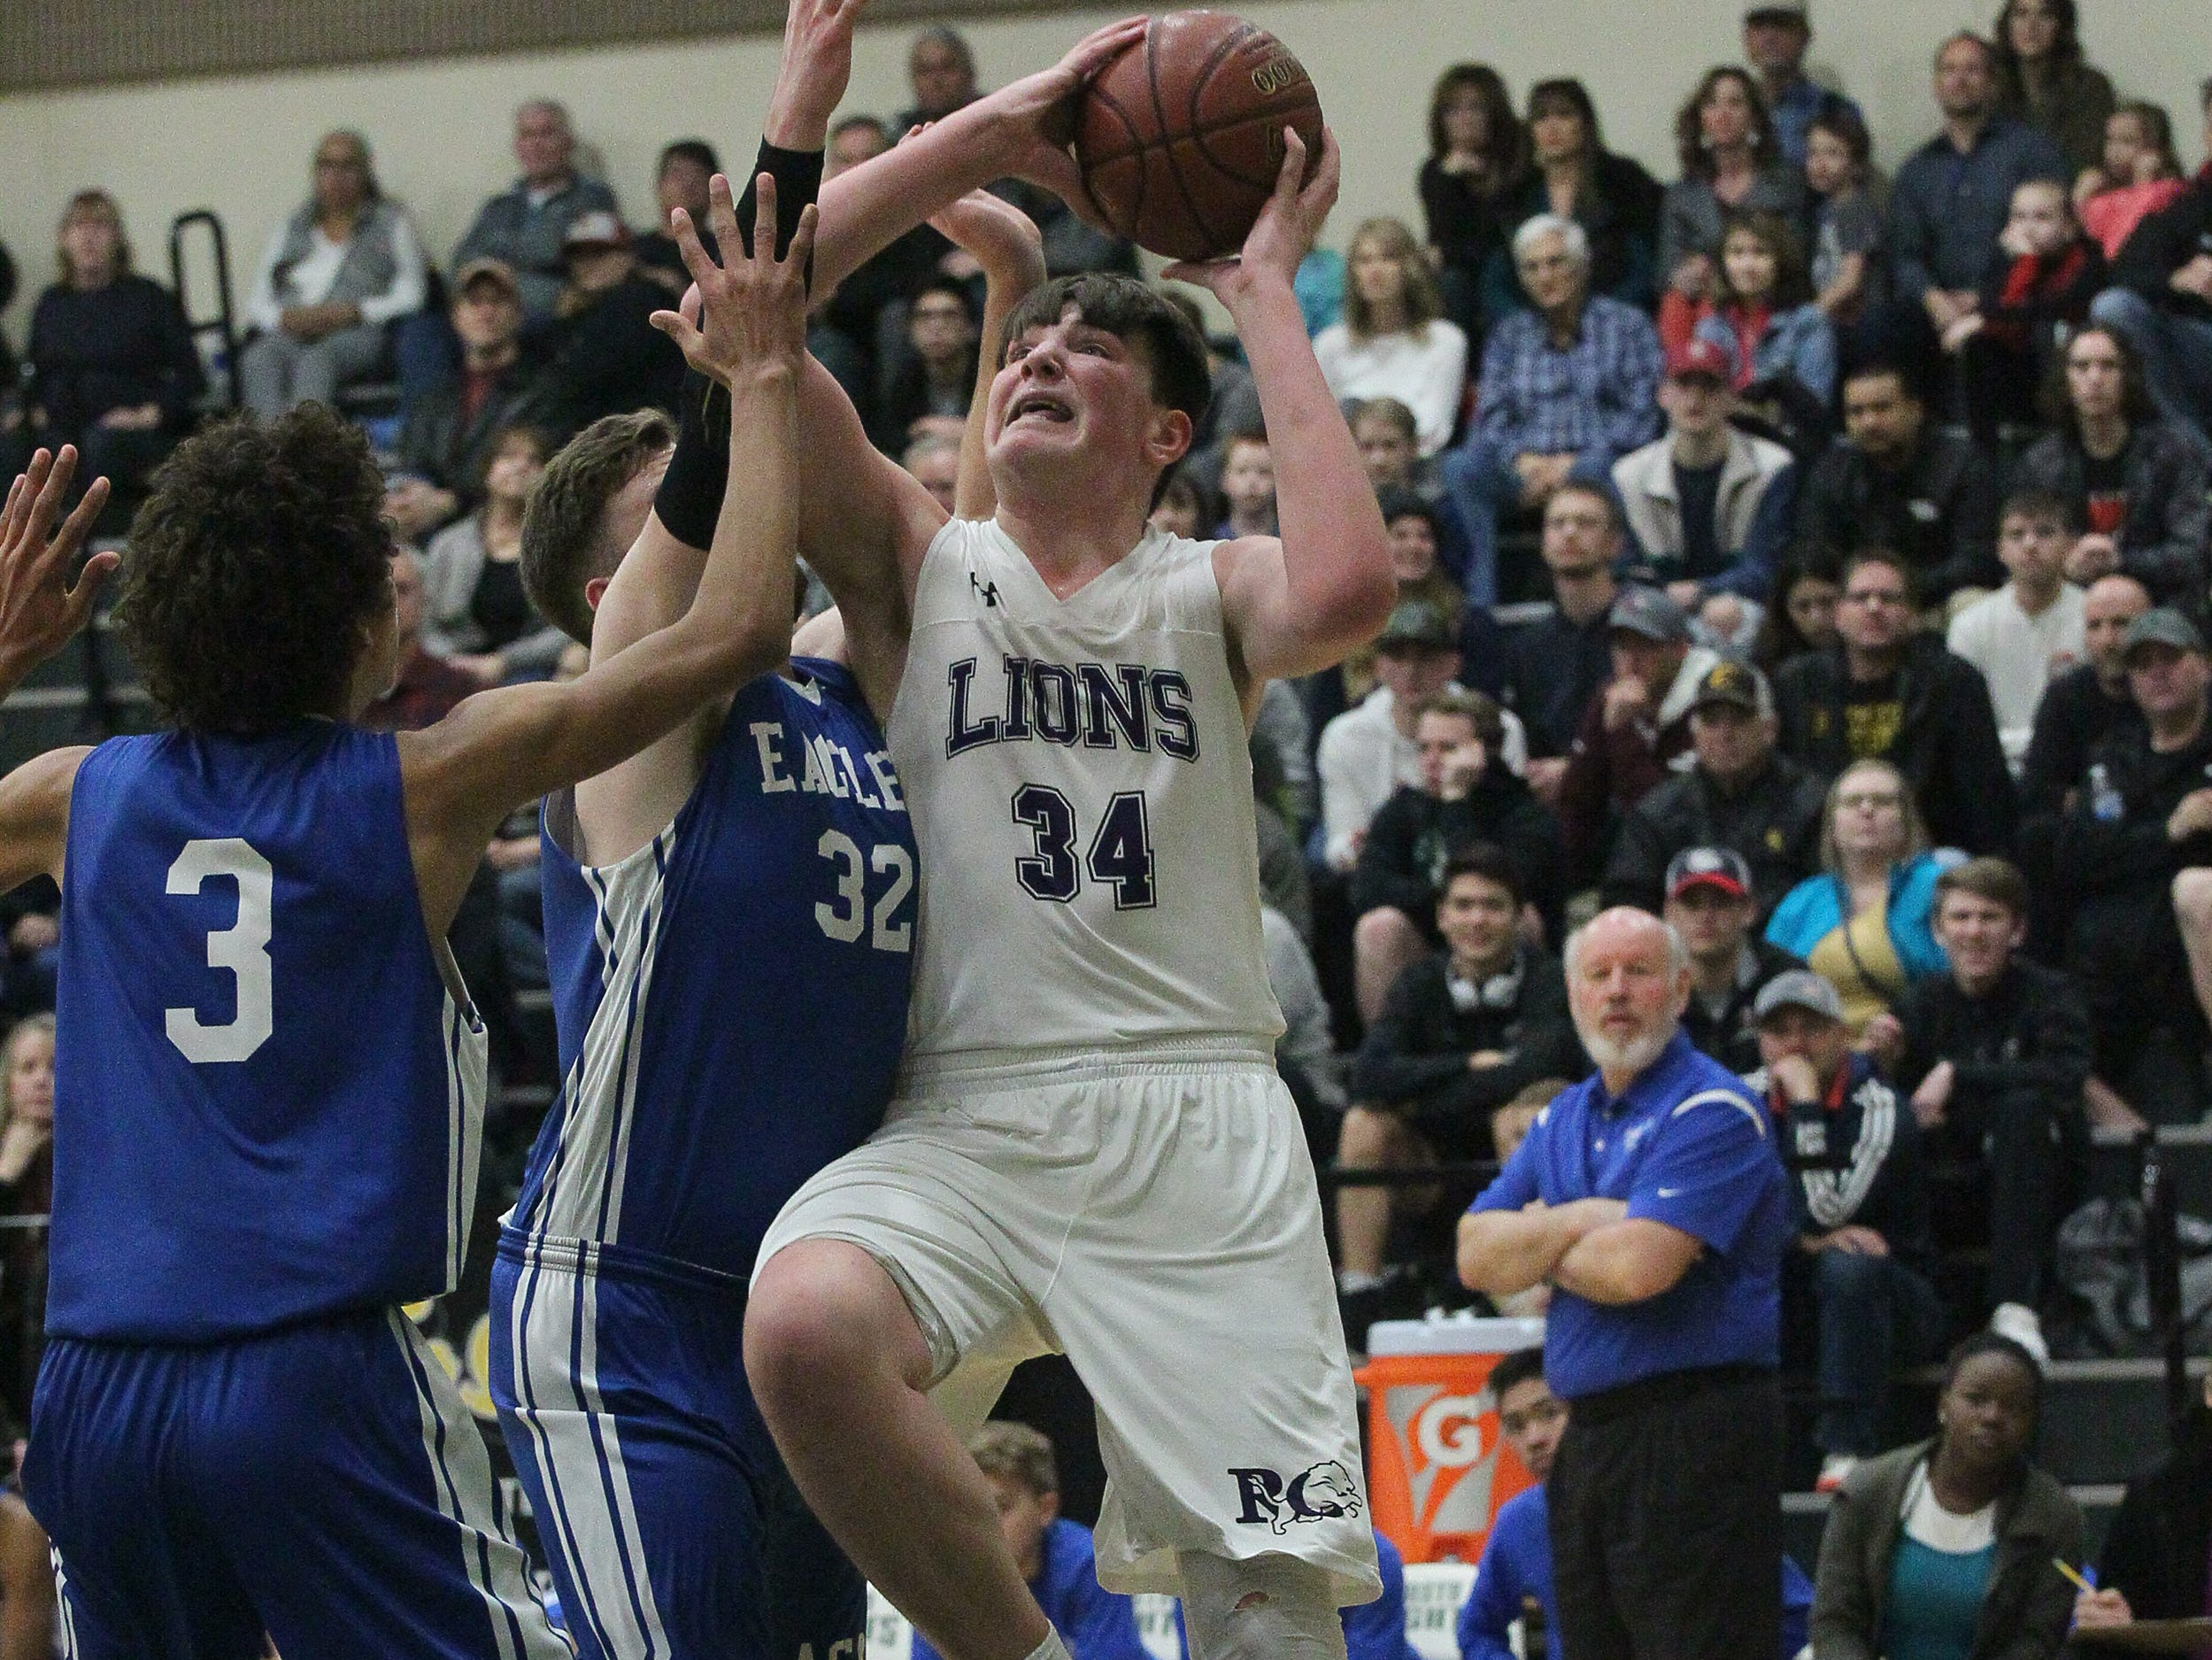 Redding Christian's Andrew Nelson (34) goes up for the basket against American Christian's Matthew Edgar (32) and Elijah Nelson (3) during the Lions' 54-50 win in the Division VI Northern Section championship game at Shasta College on Saturday, Feb. 23.